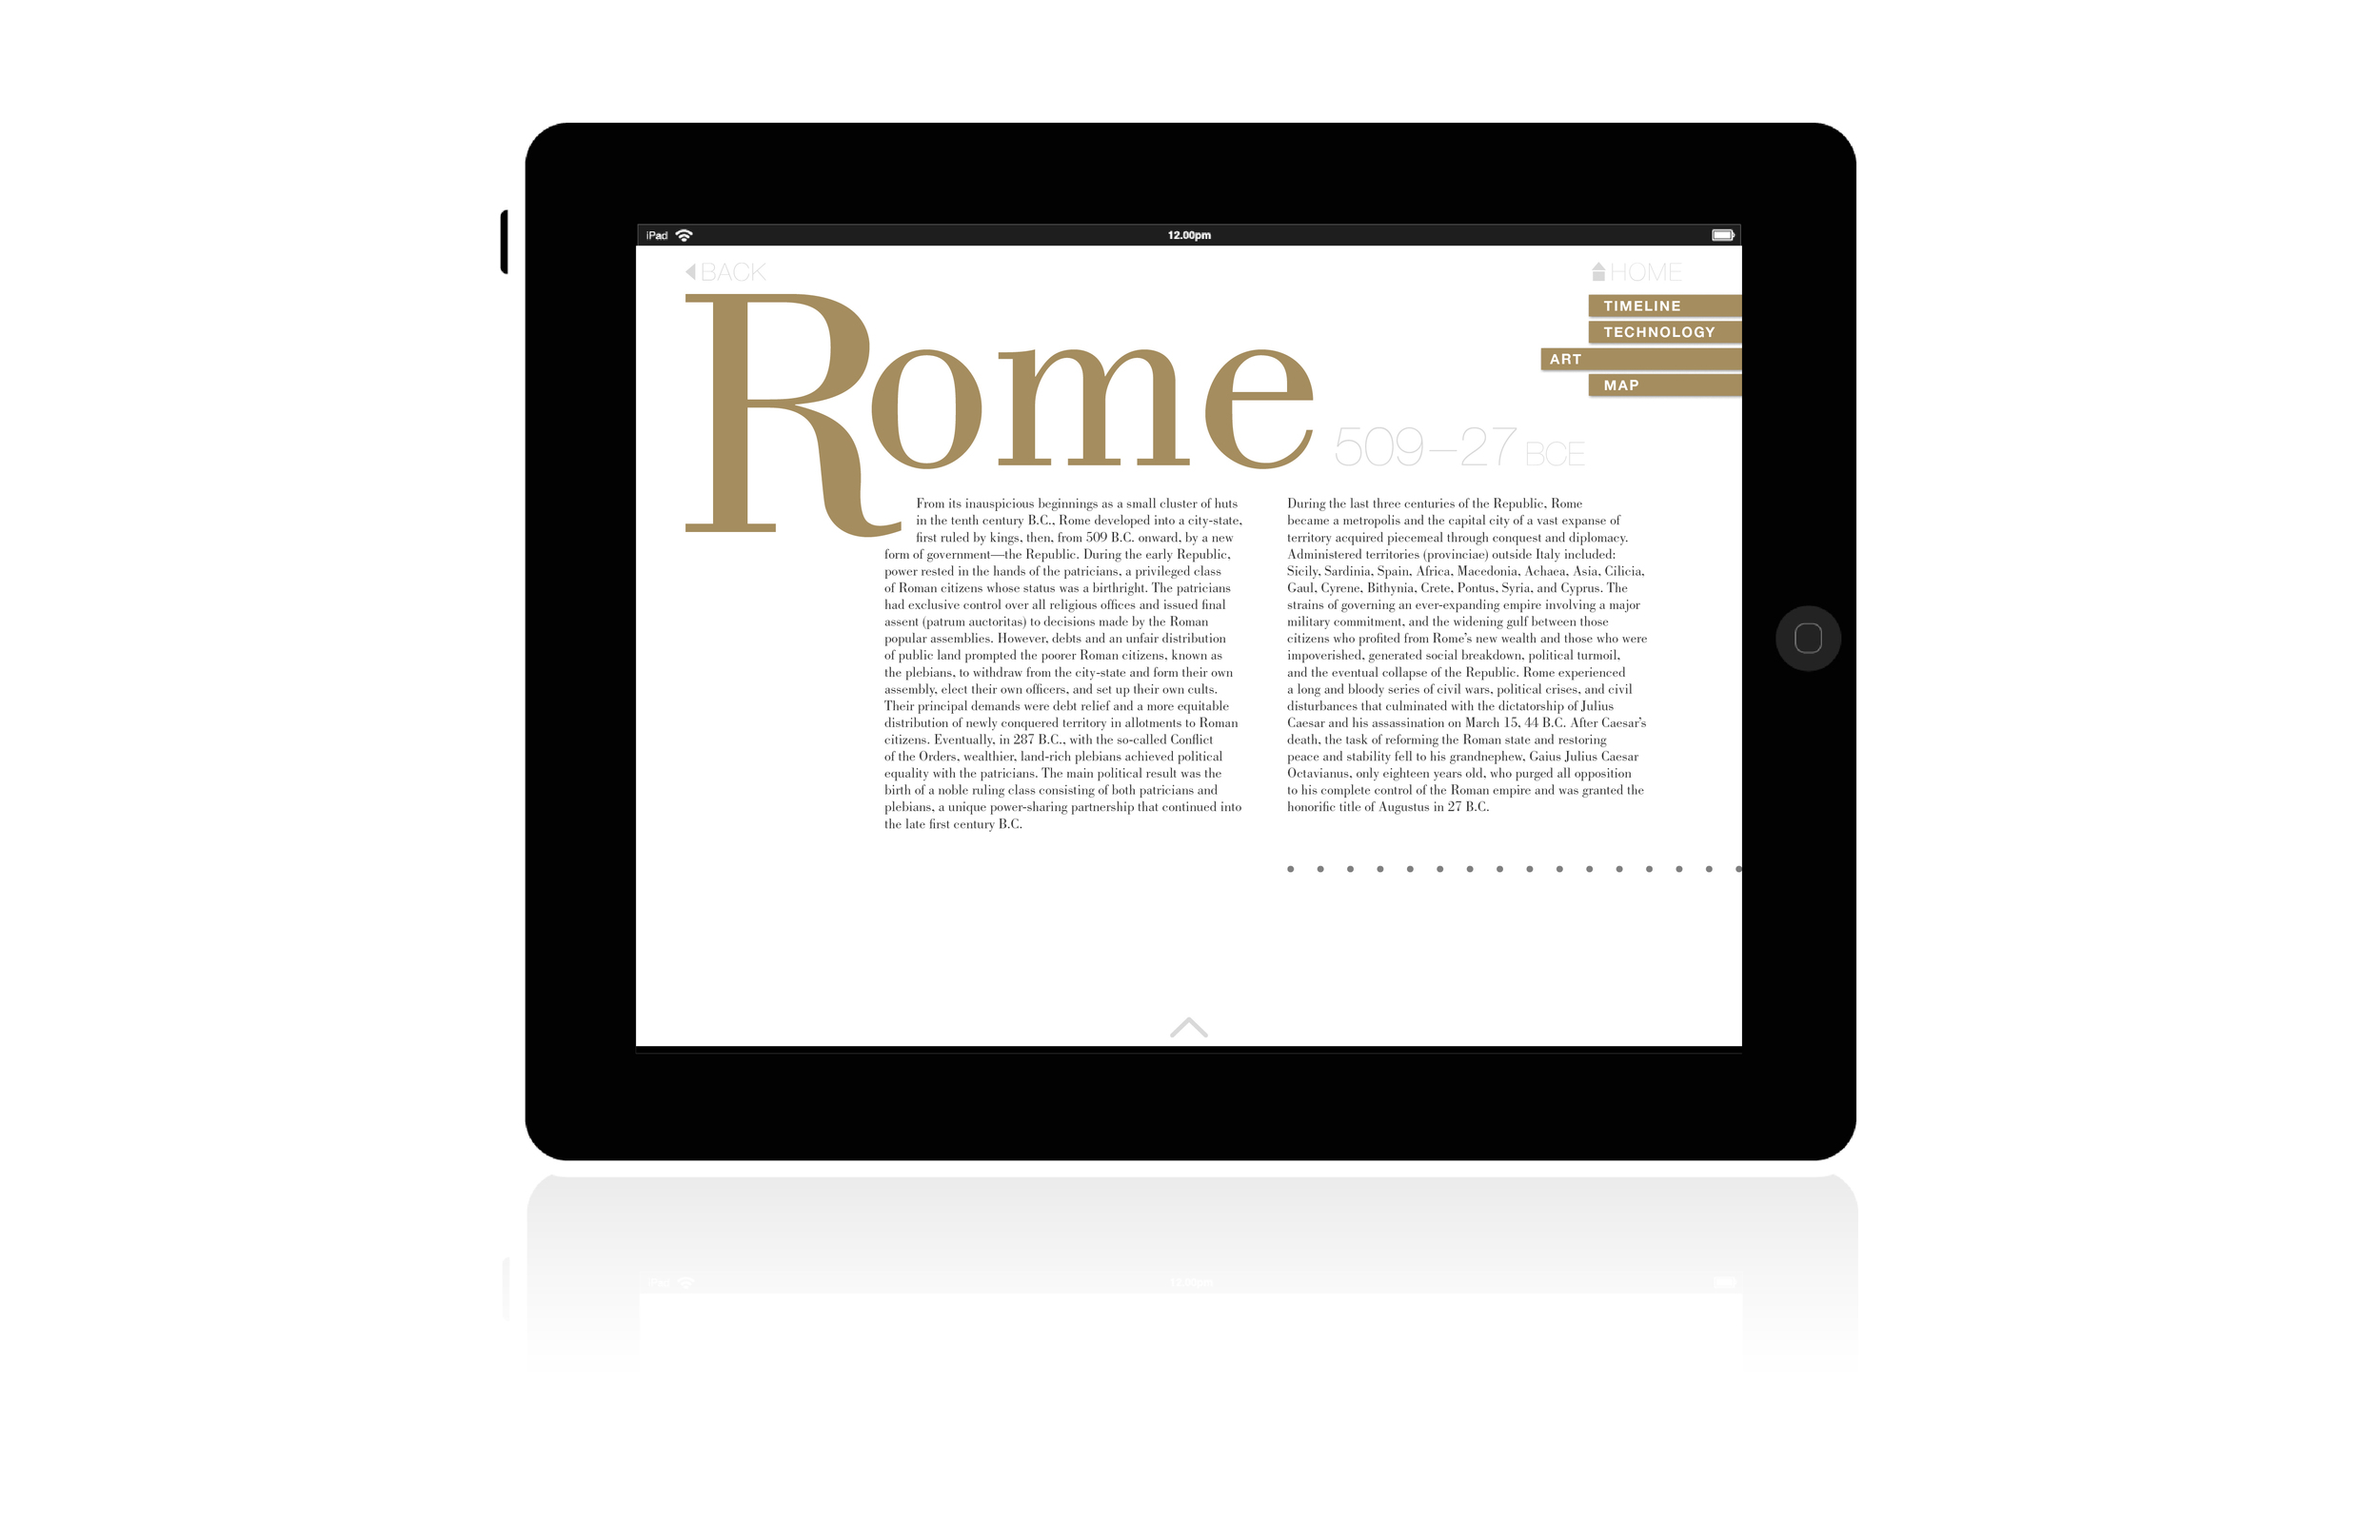 Civilizations intro pages, give a shorten history of that period ie. famous leaders, wars, or cultural developments, that will help give context to the pieces presented.